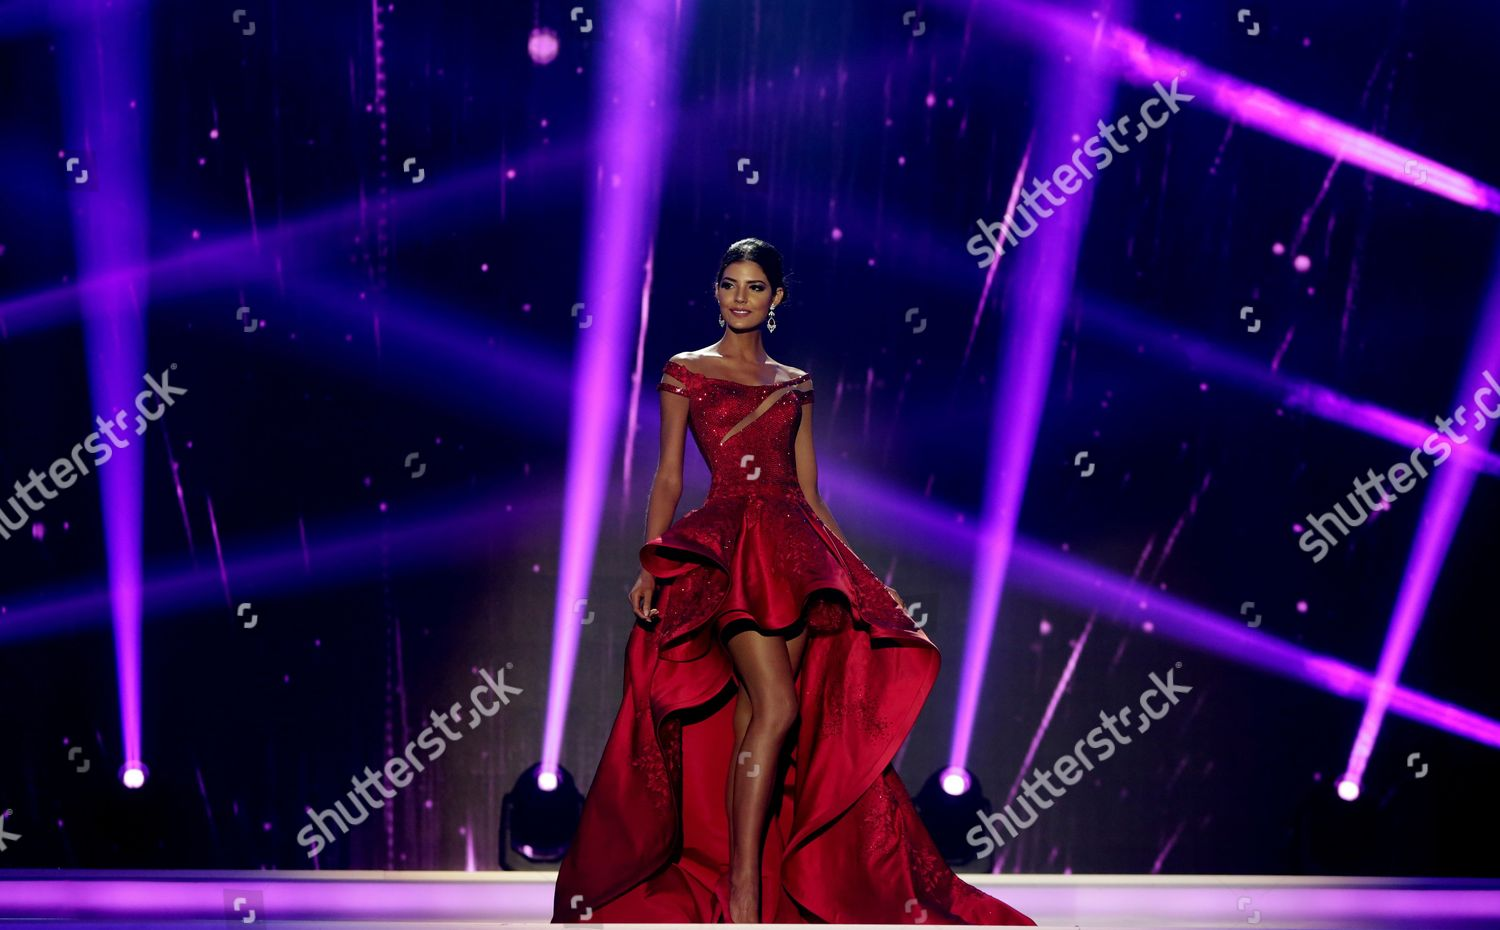 anabella castro, 4th runner-up de miss international 2018. - Página 18 Laura-gonzalez-selected-as-miss-colombia-2017-cartagena-shutterstock-editorial-8538721h